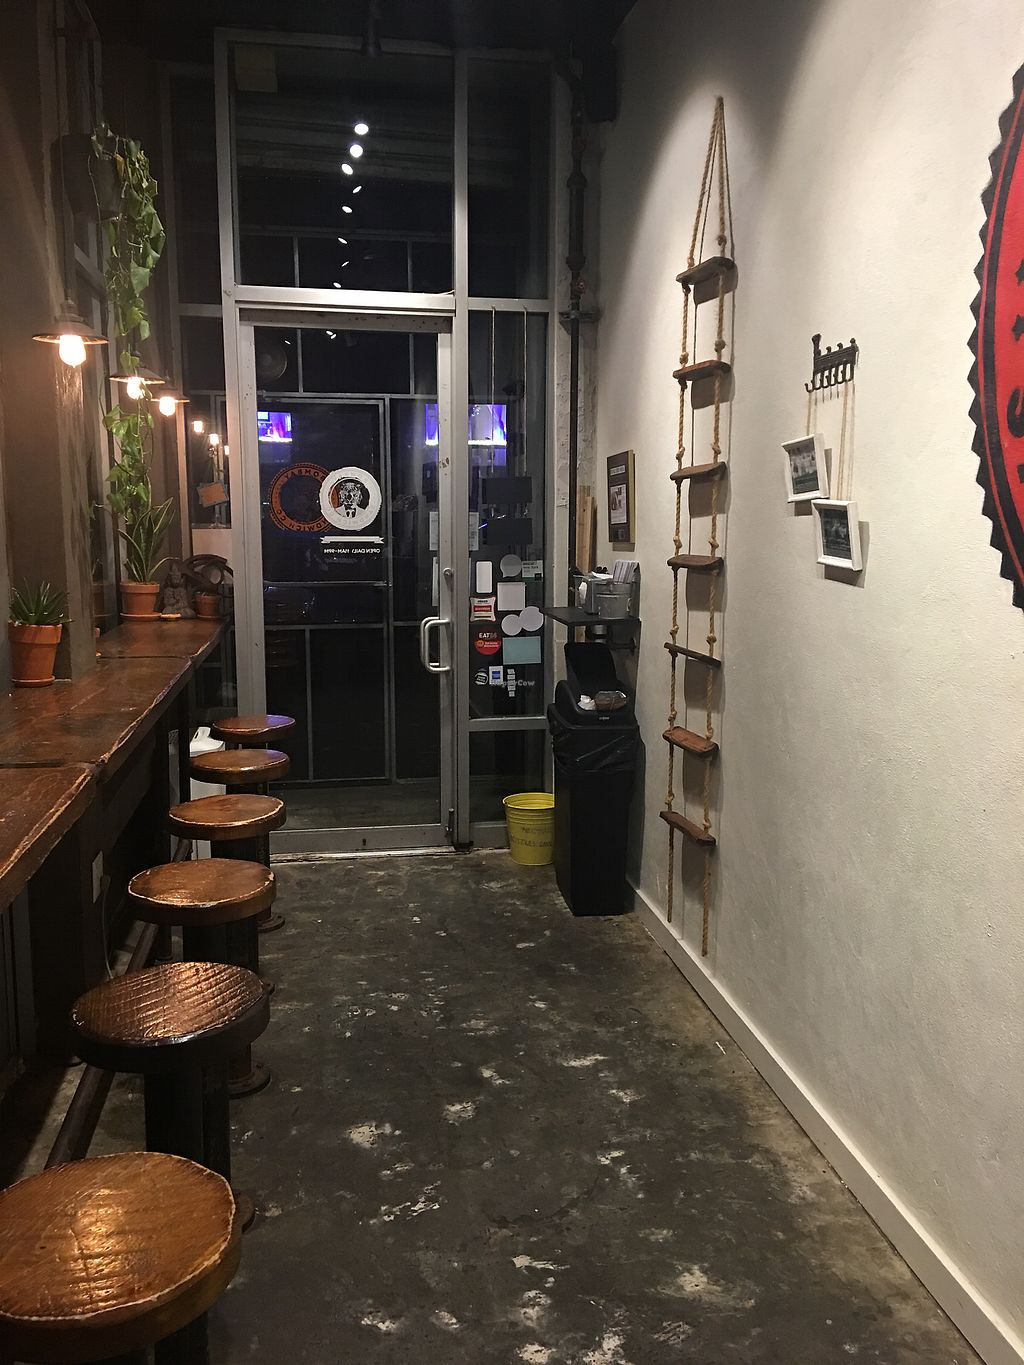 """Photo of Bombay Sandwich Co.  by <a href=""""/members/profile/adriannabn"""">adriannabn</a> <br/>Small seating area <br/> October 5, 2017  - <a href='/contact/abuse/image/36591/312028'>Report</a>"""